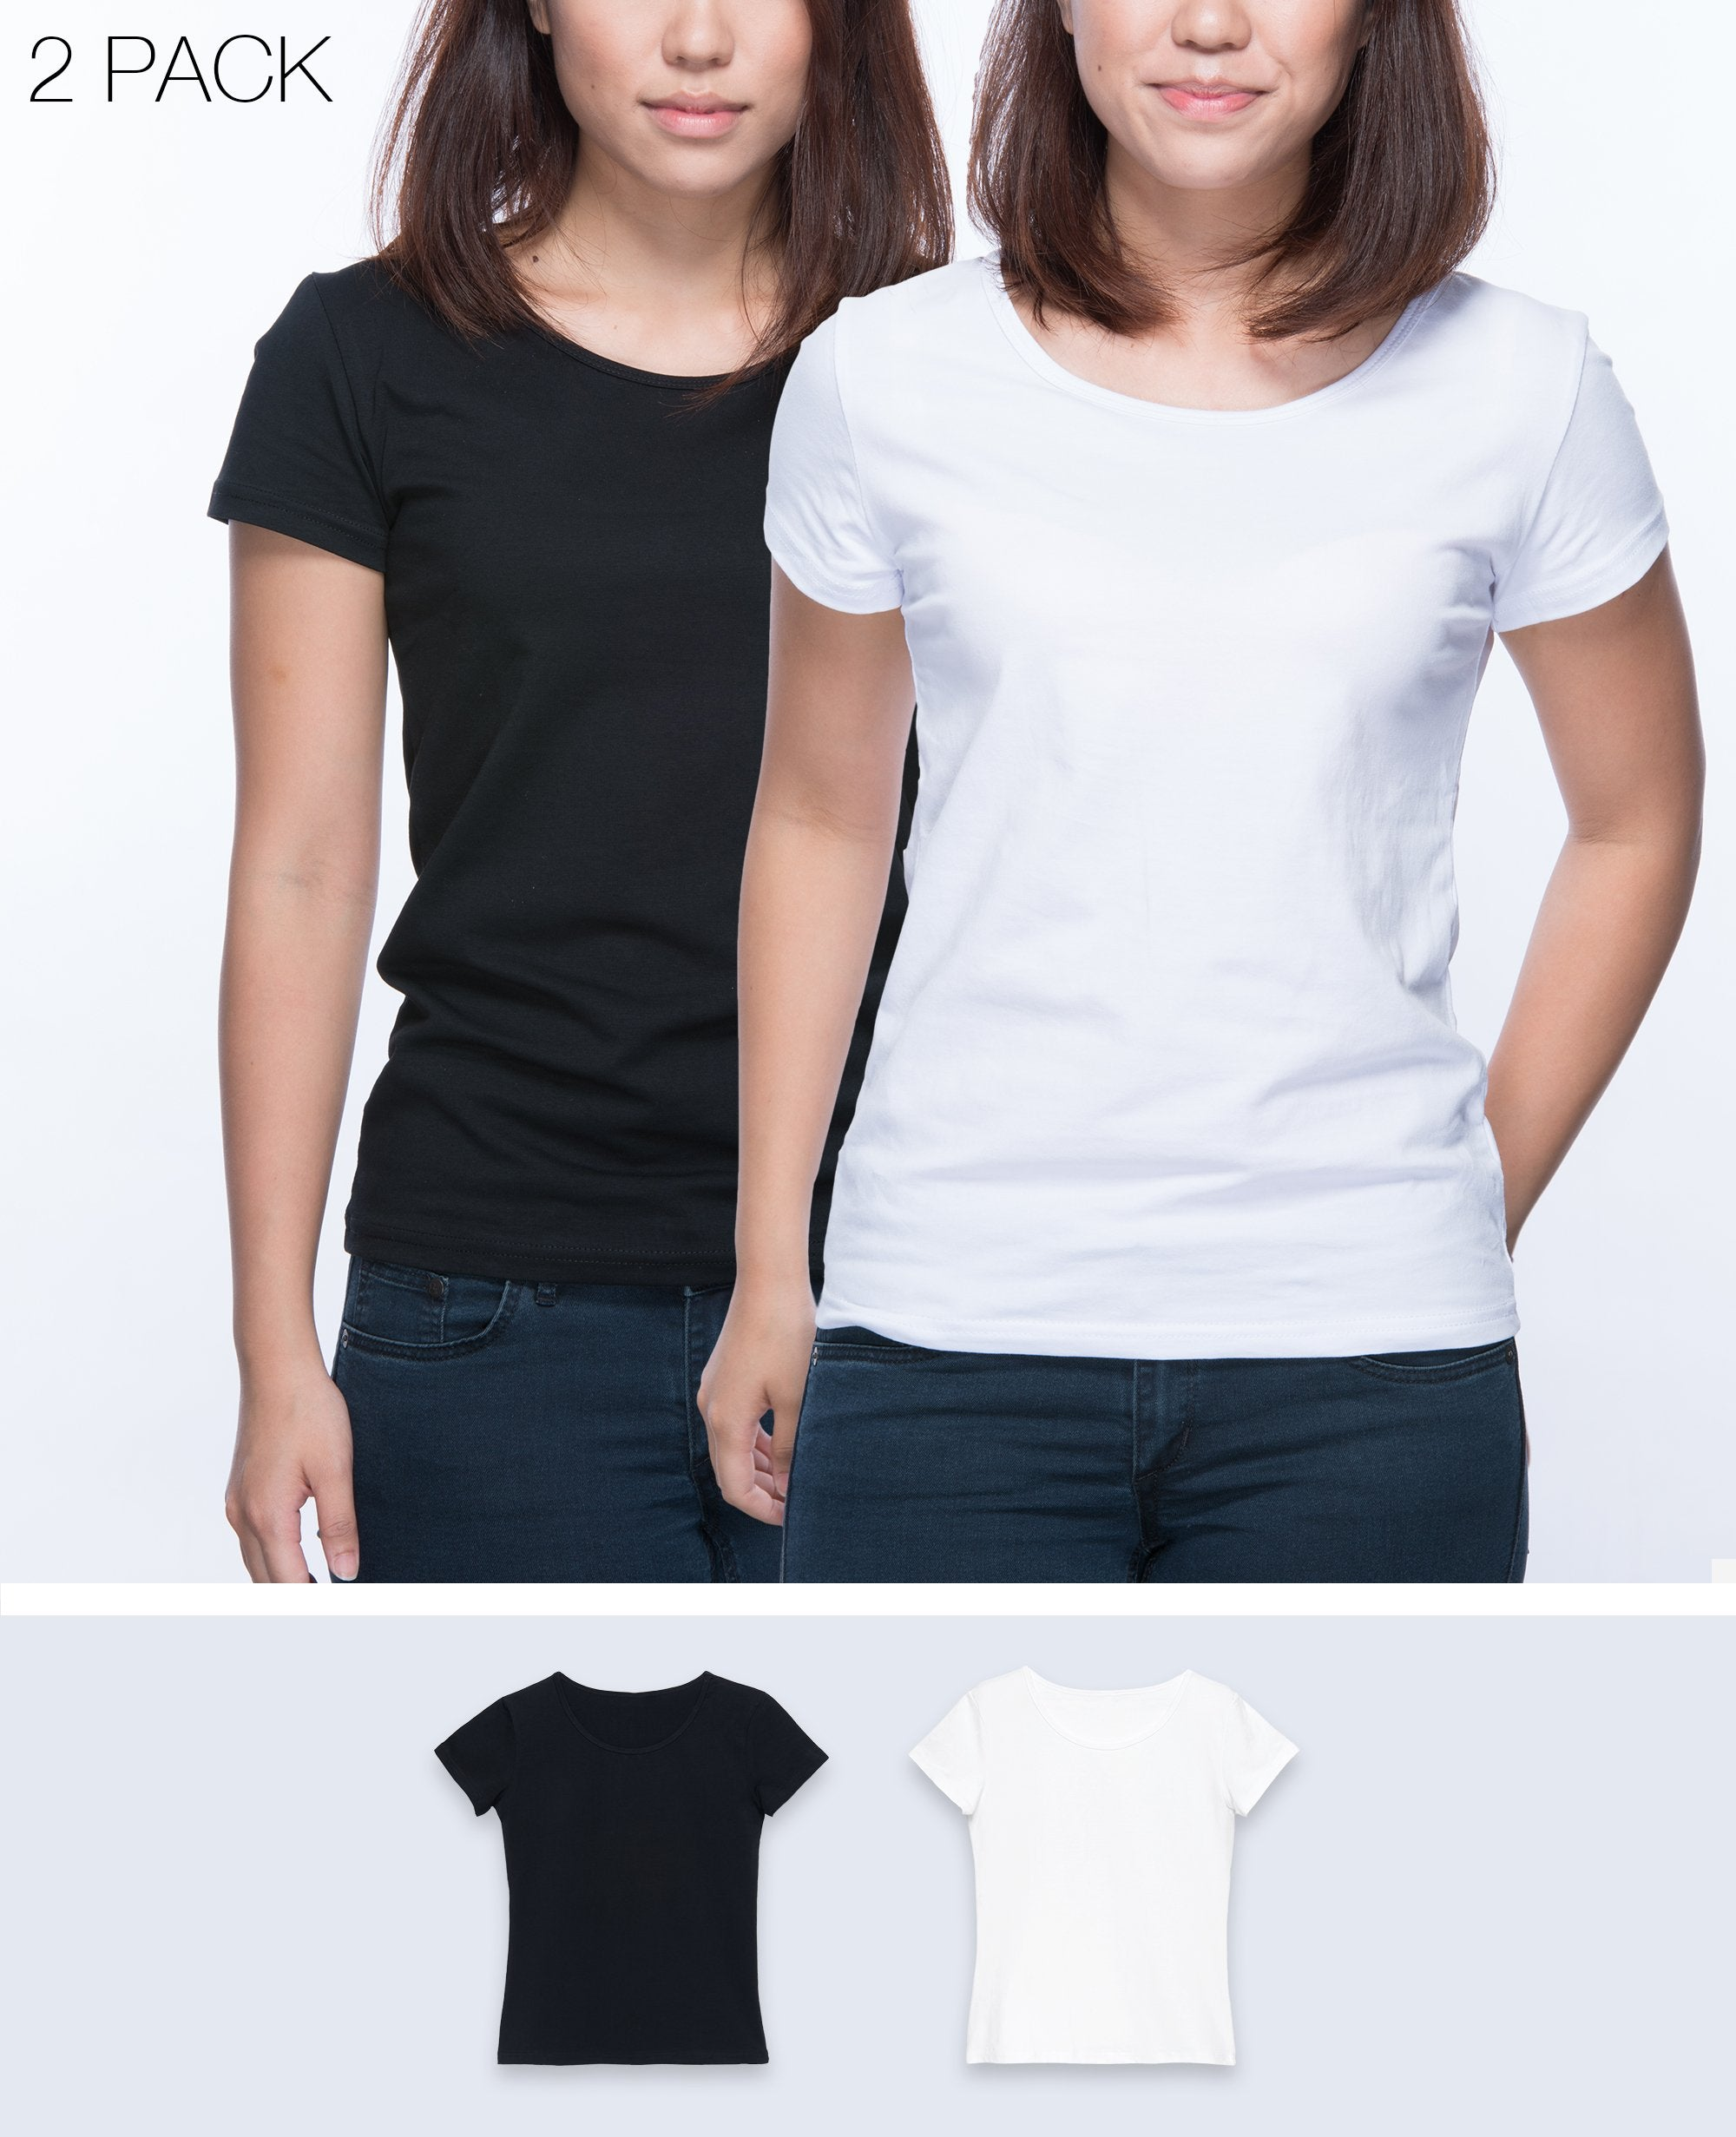 Slim fit T-shirt Women in Black / White 2 pack - T-Shirts - BRANMA - BRANMA